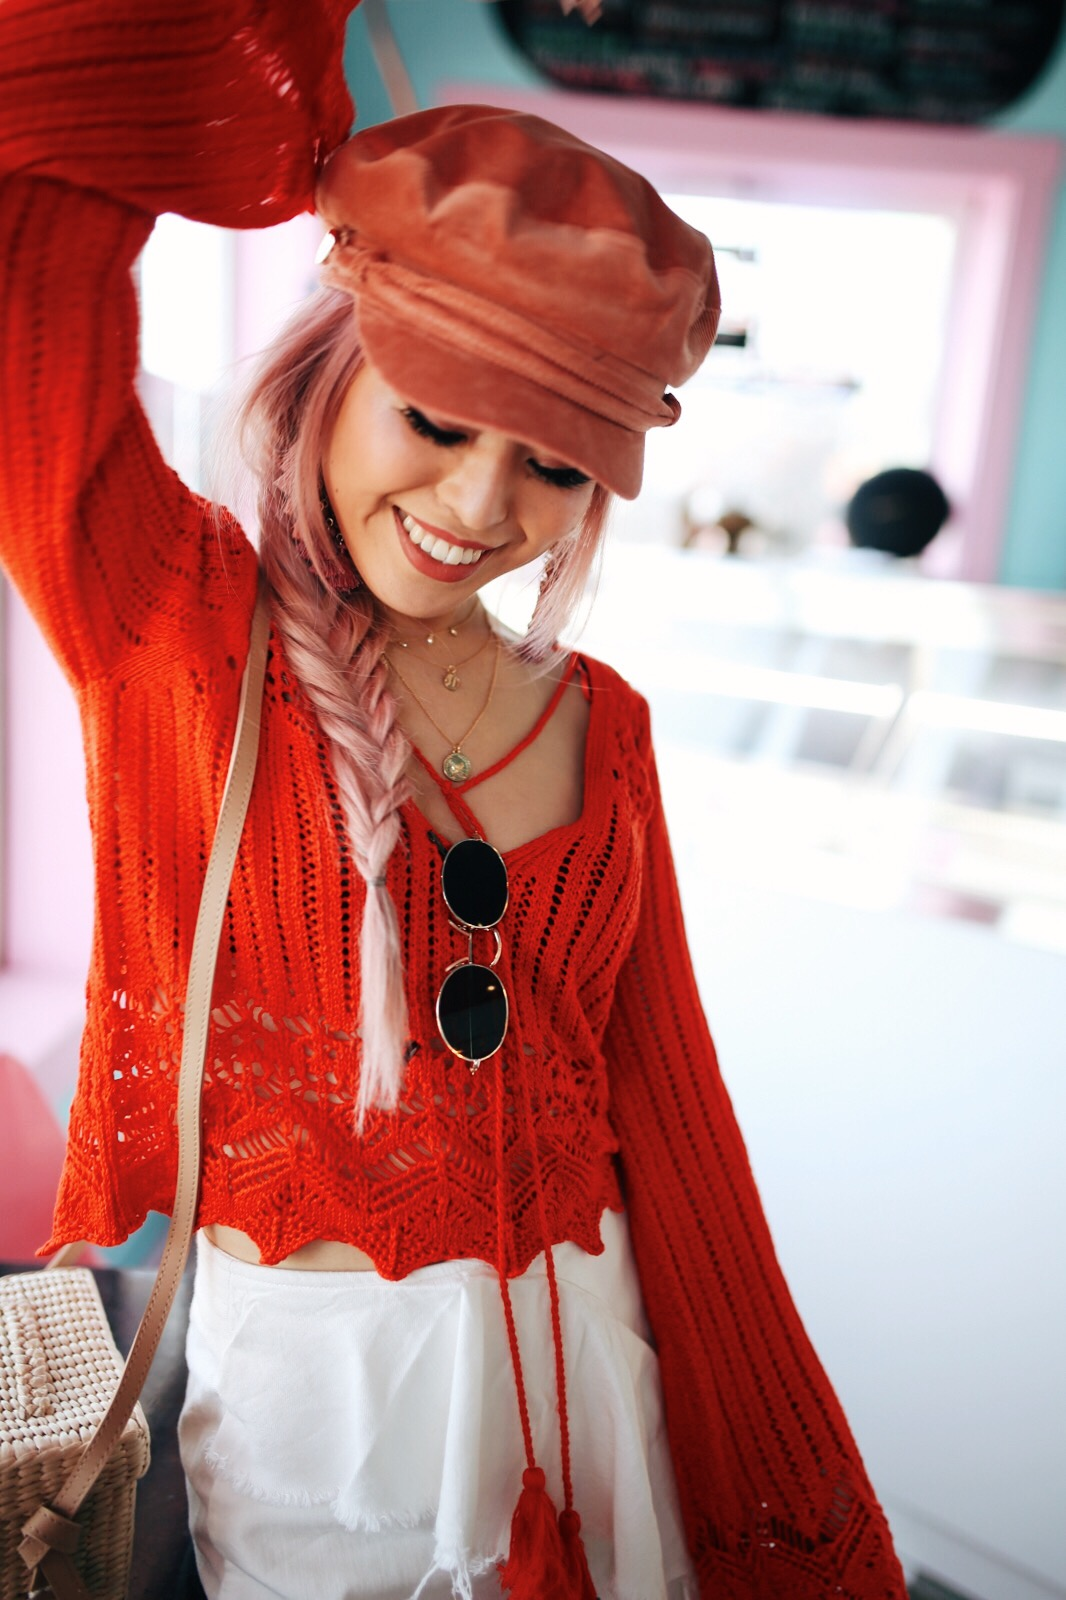 River Island Pink cord baker boy hat-Pink ombre tassel drop earrings-Red crotchet knit tassel crop top-White frill denim skort-White scallop block heel sandals-Shein Straw box bag with pom pom-Aikas Love Closet-Seattle Style Fashion Blogger-Japanese-Pink Hair-Side fishtail braid-summer style-smile 9